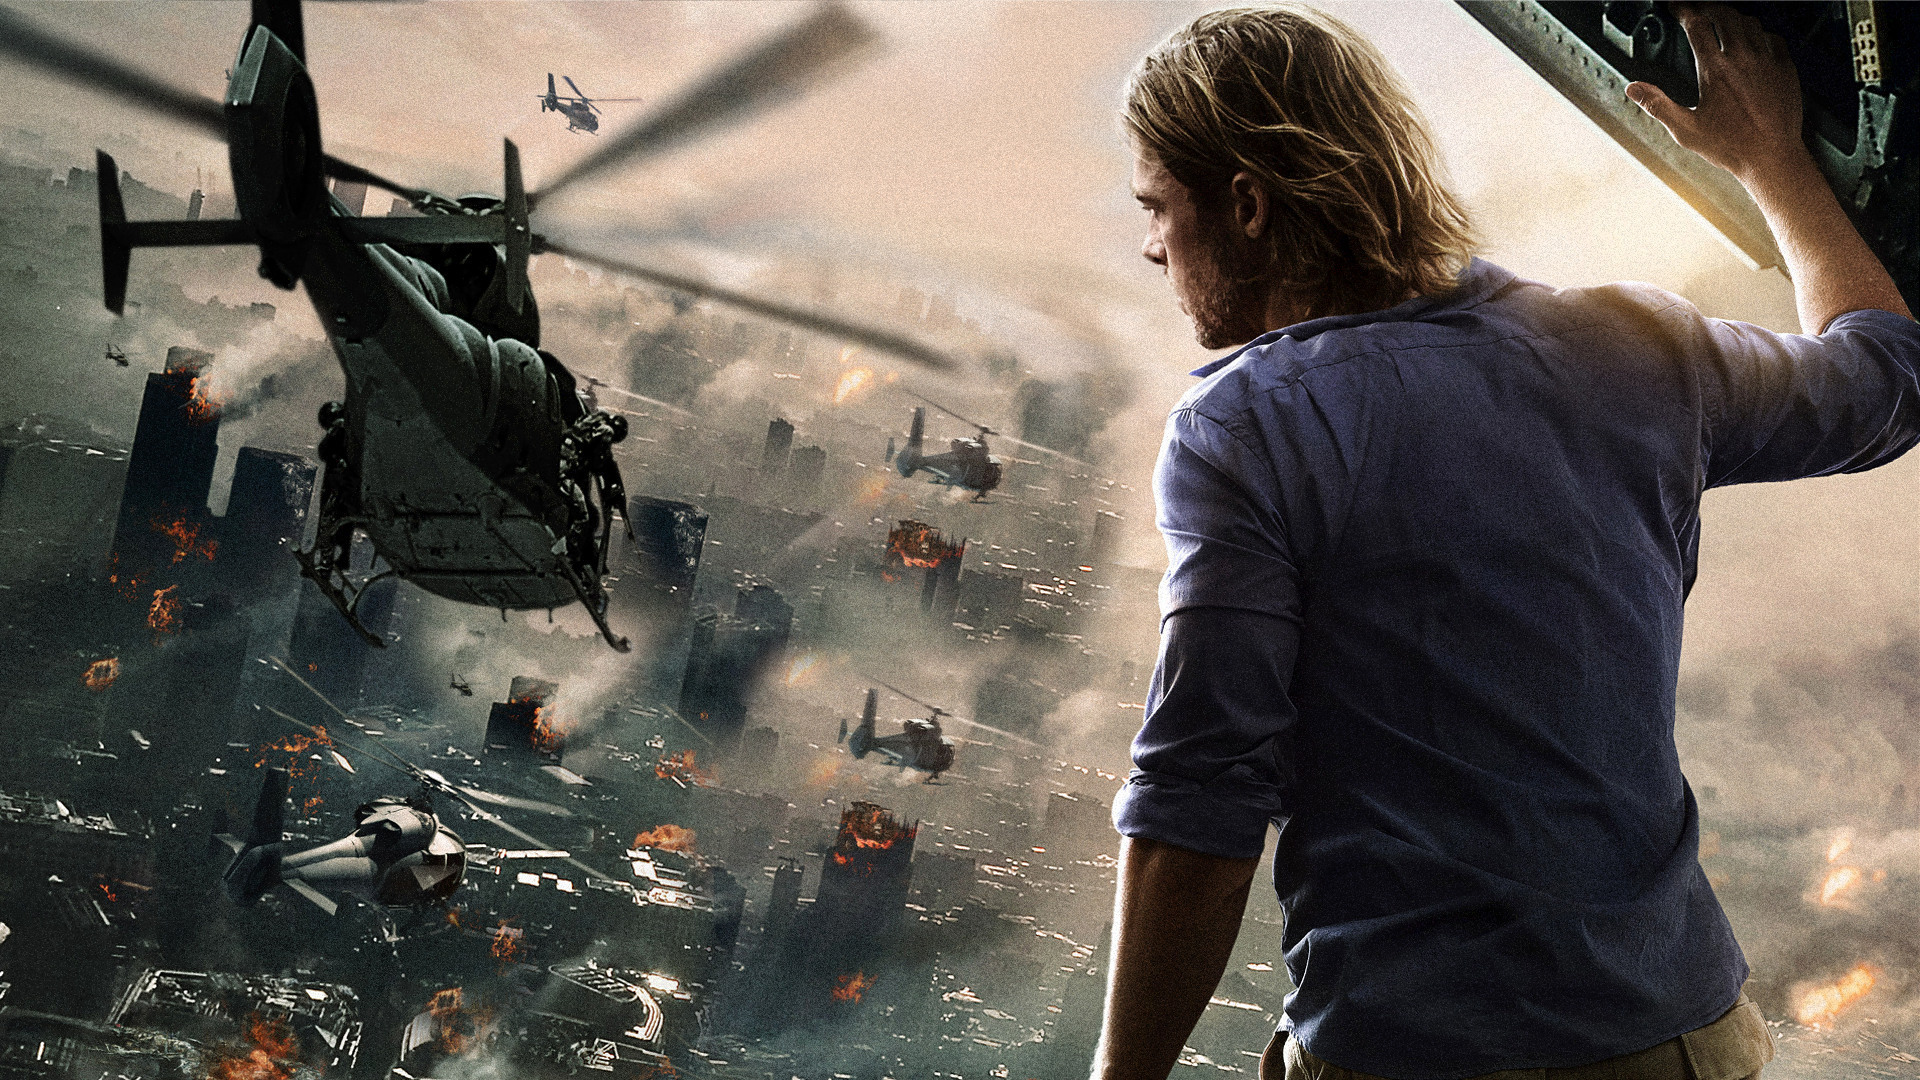 world war z free online movie download